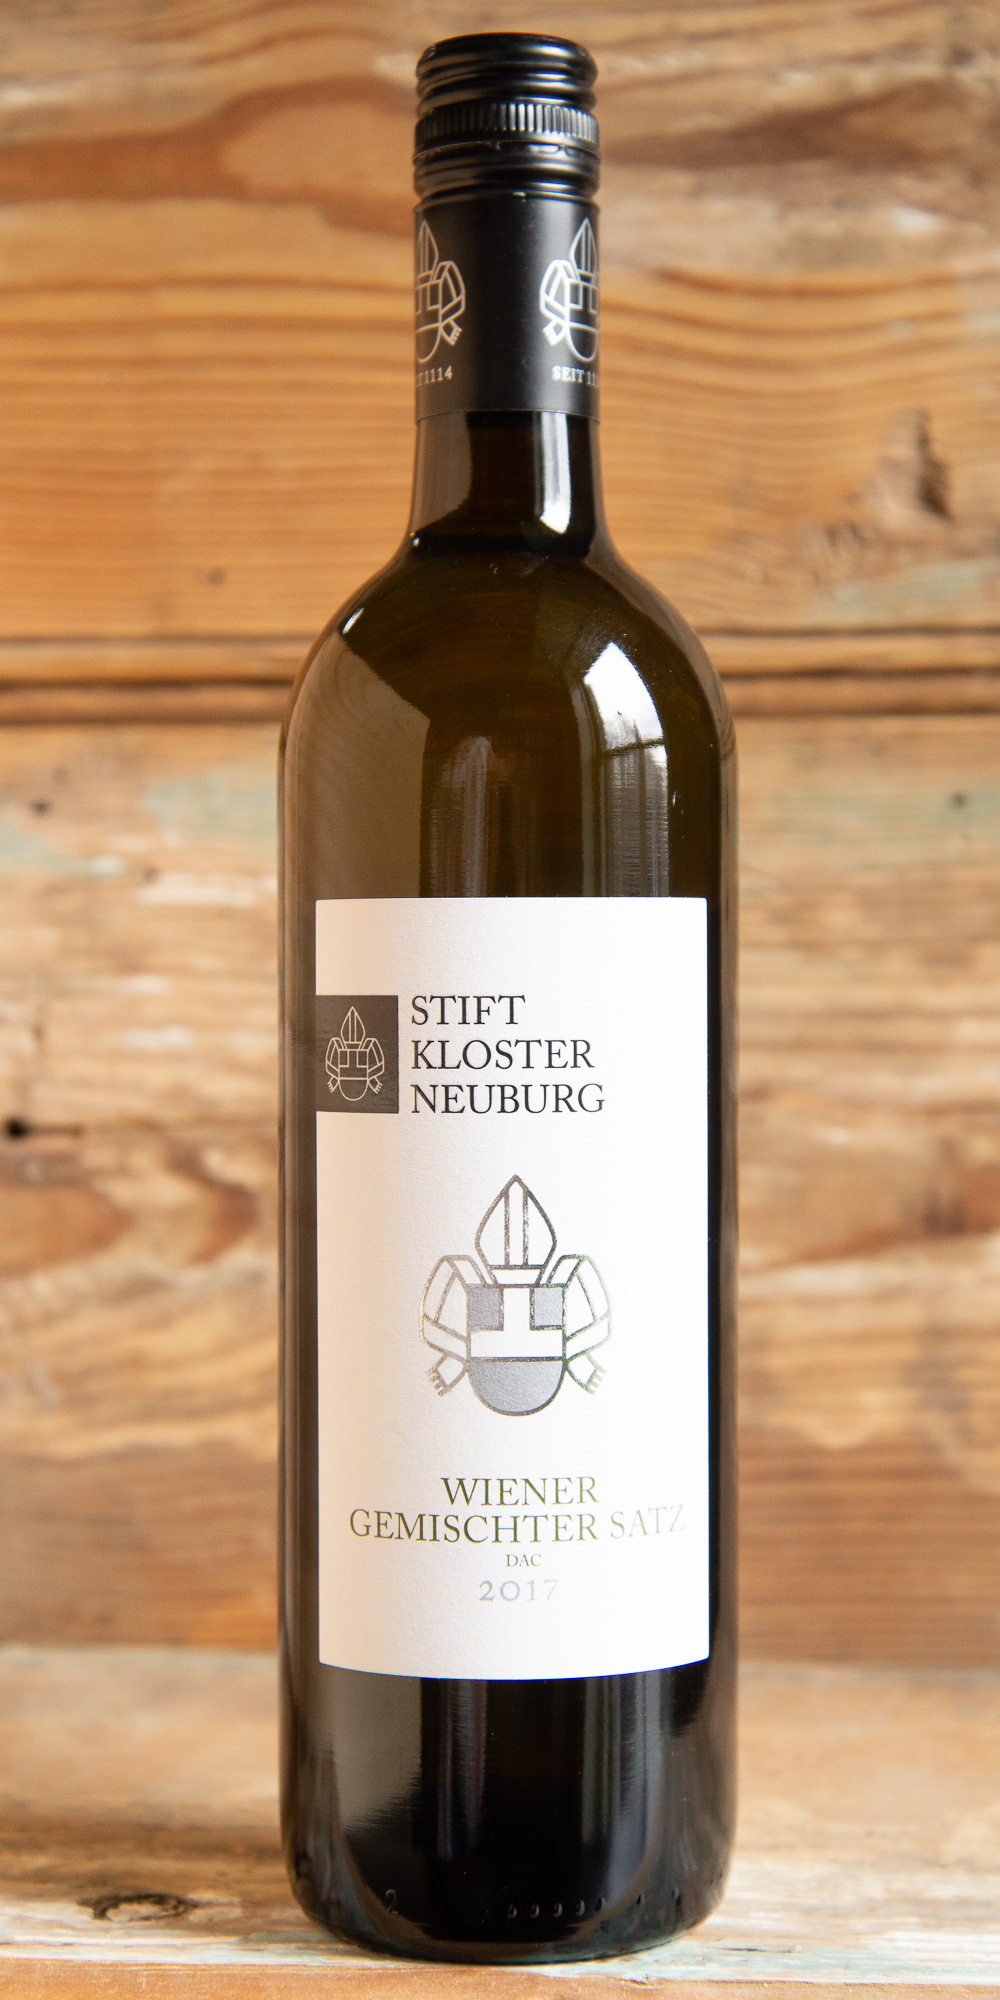 Stift Klosterneuberg Weiner Germischischter Satz 2017 - Origin: AustriaRetail: $22.95 | Sale $20.65Since its foundation in 1114, Klosterneuburg monastery has been growing wine and therefore is the oldest wine estate of Austria. This Viennese field blend is youthful and fresh. Notes of green apple, flowers, and stone-fruit welcome you into the glass. The fresh, brightly-toned palate sings with zesty citrus and juicy yellow pear. A phenolic, spicy edge gives it depth and appeal.Grüner Veltliner | Chardonnay | Weissburgunder (Pinot blanc)